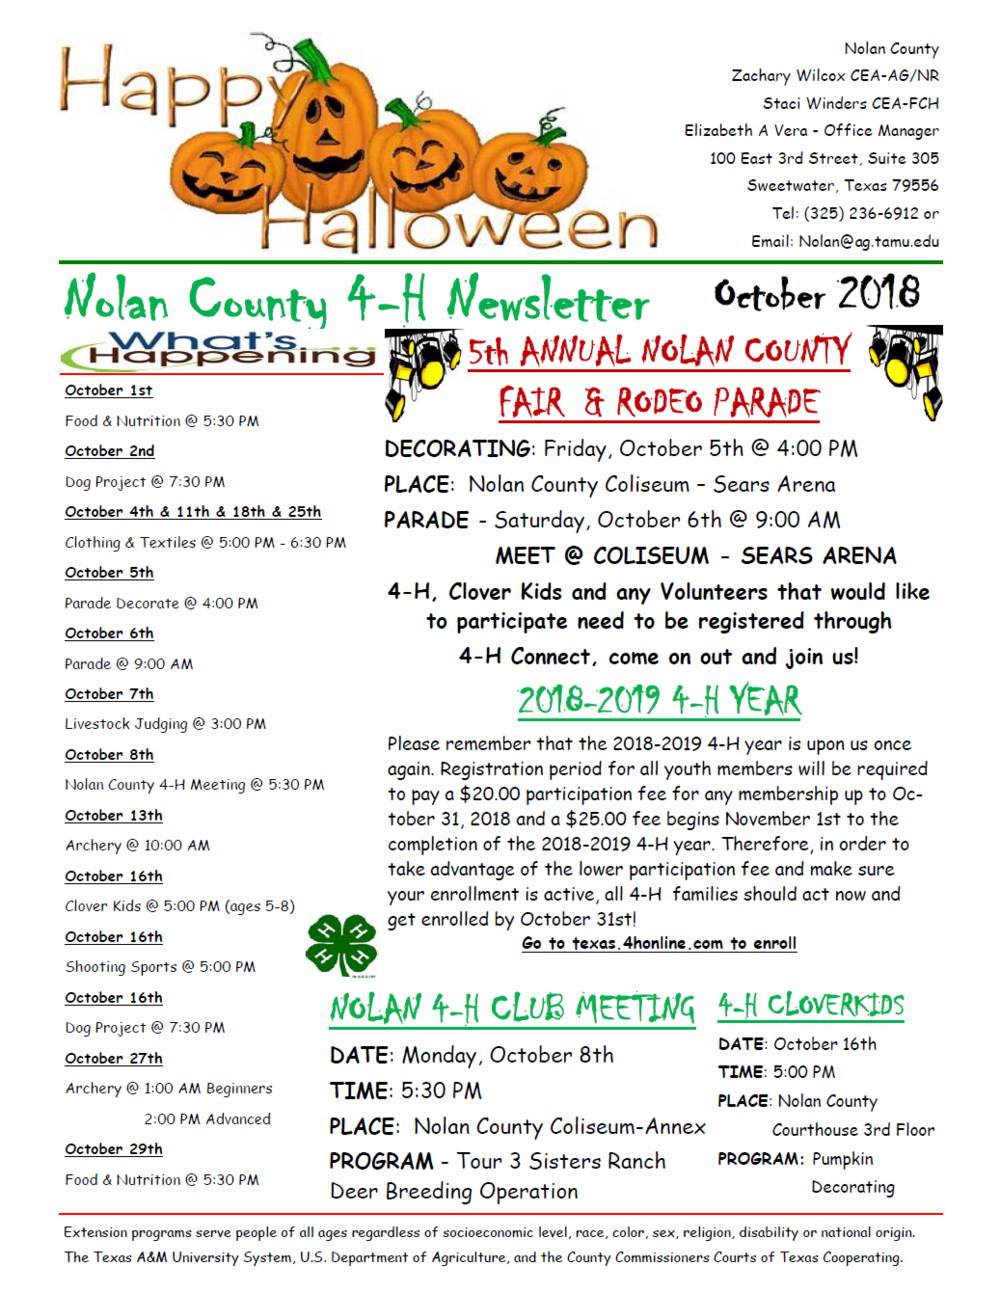 Nolan County 4-H Newsletter October 2018 P1.png